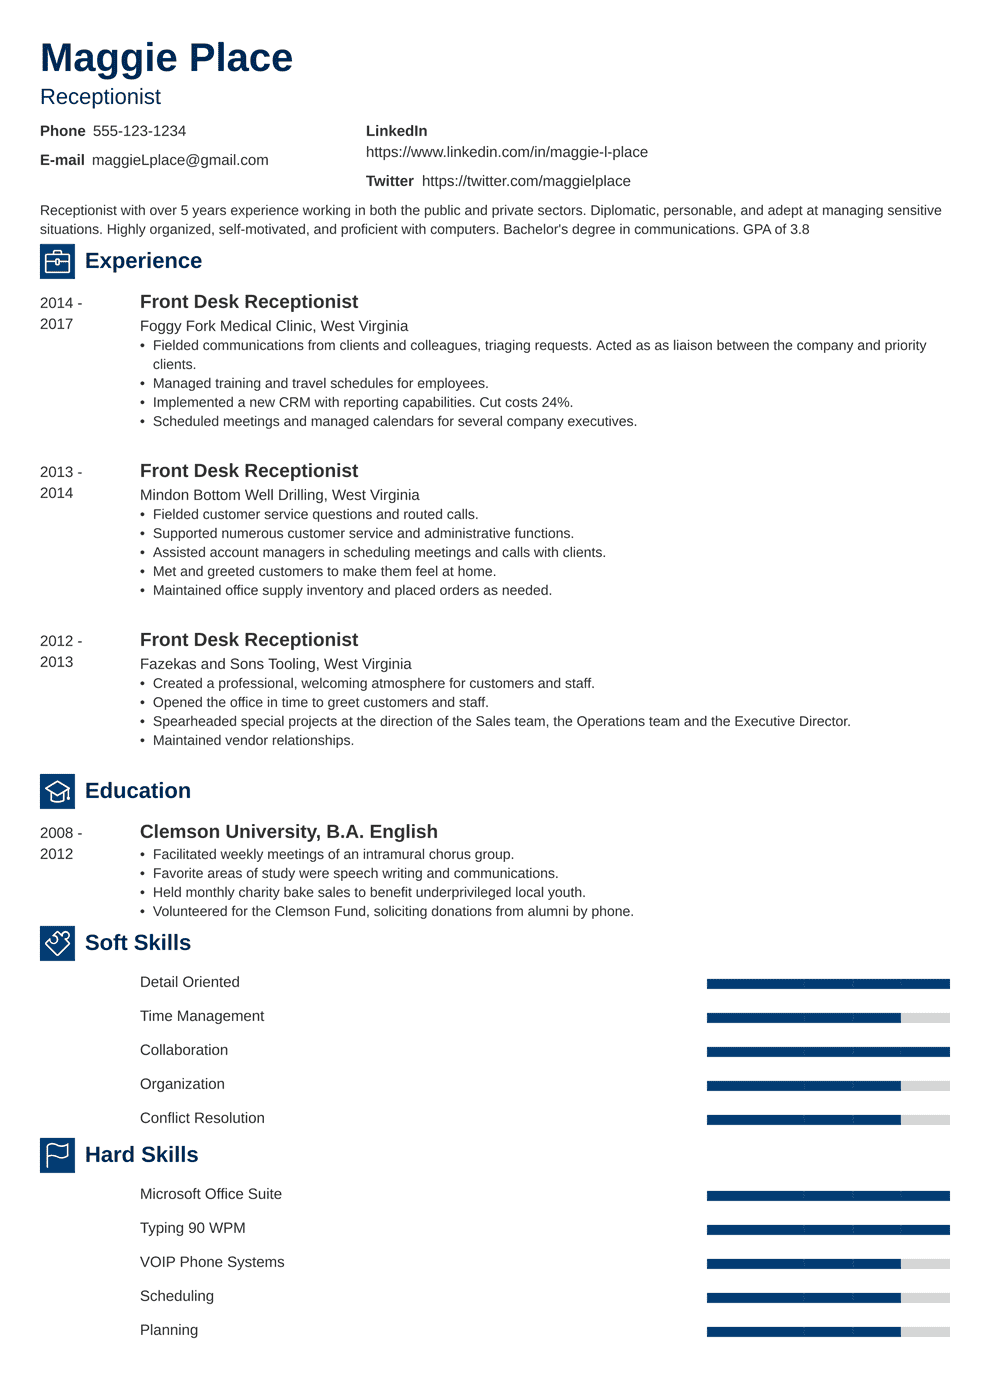 Receptionist Resume: Sample & Complete Guide [+20 Examples]